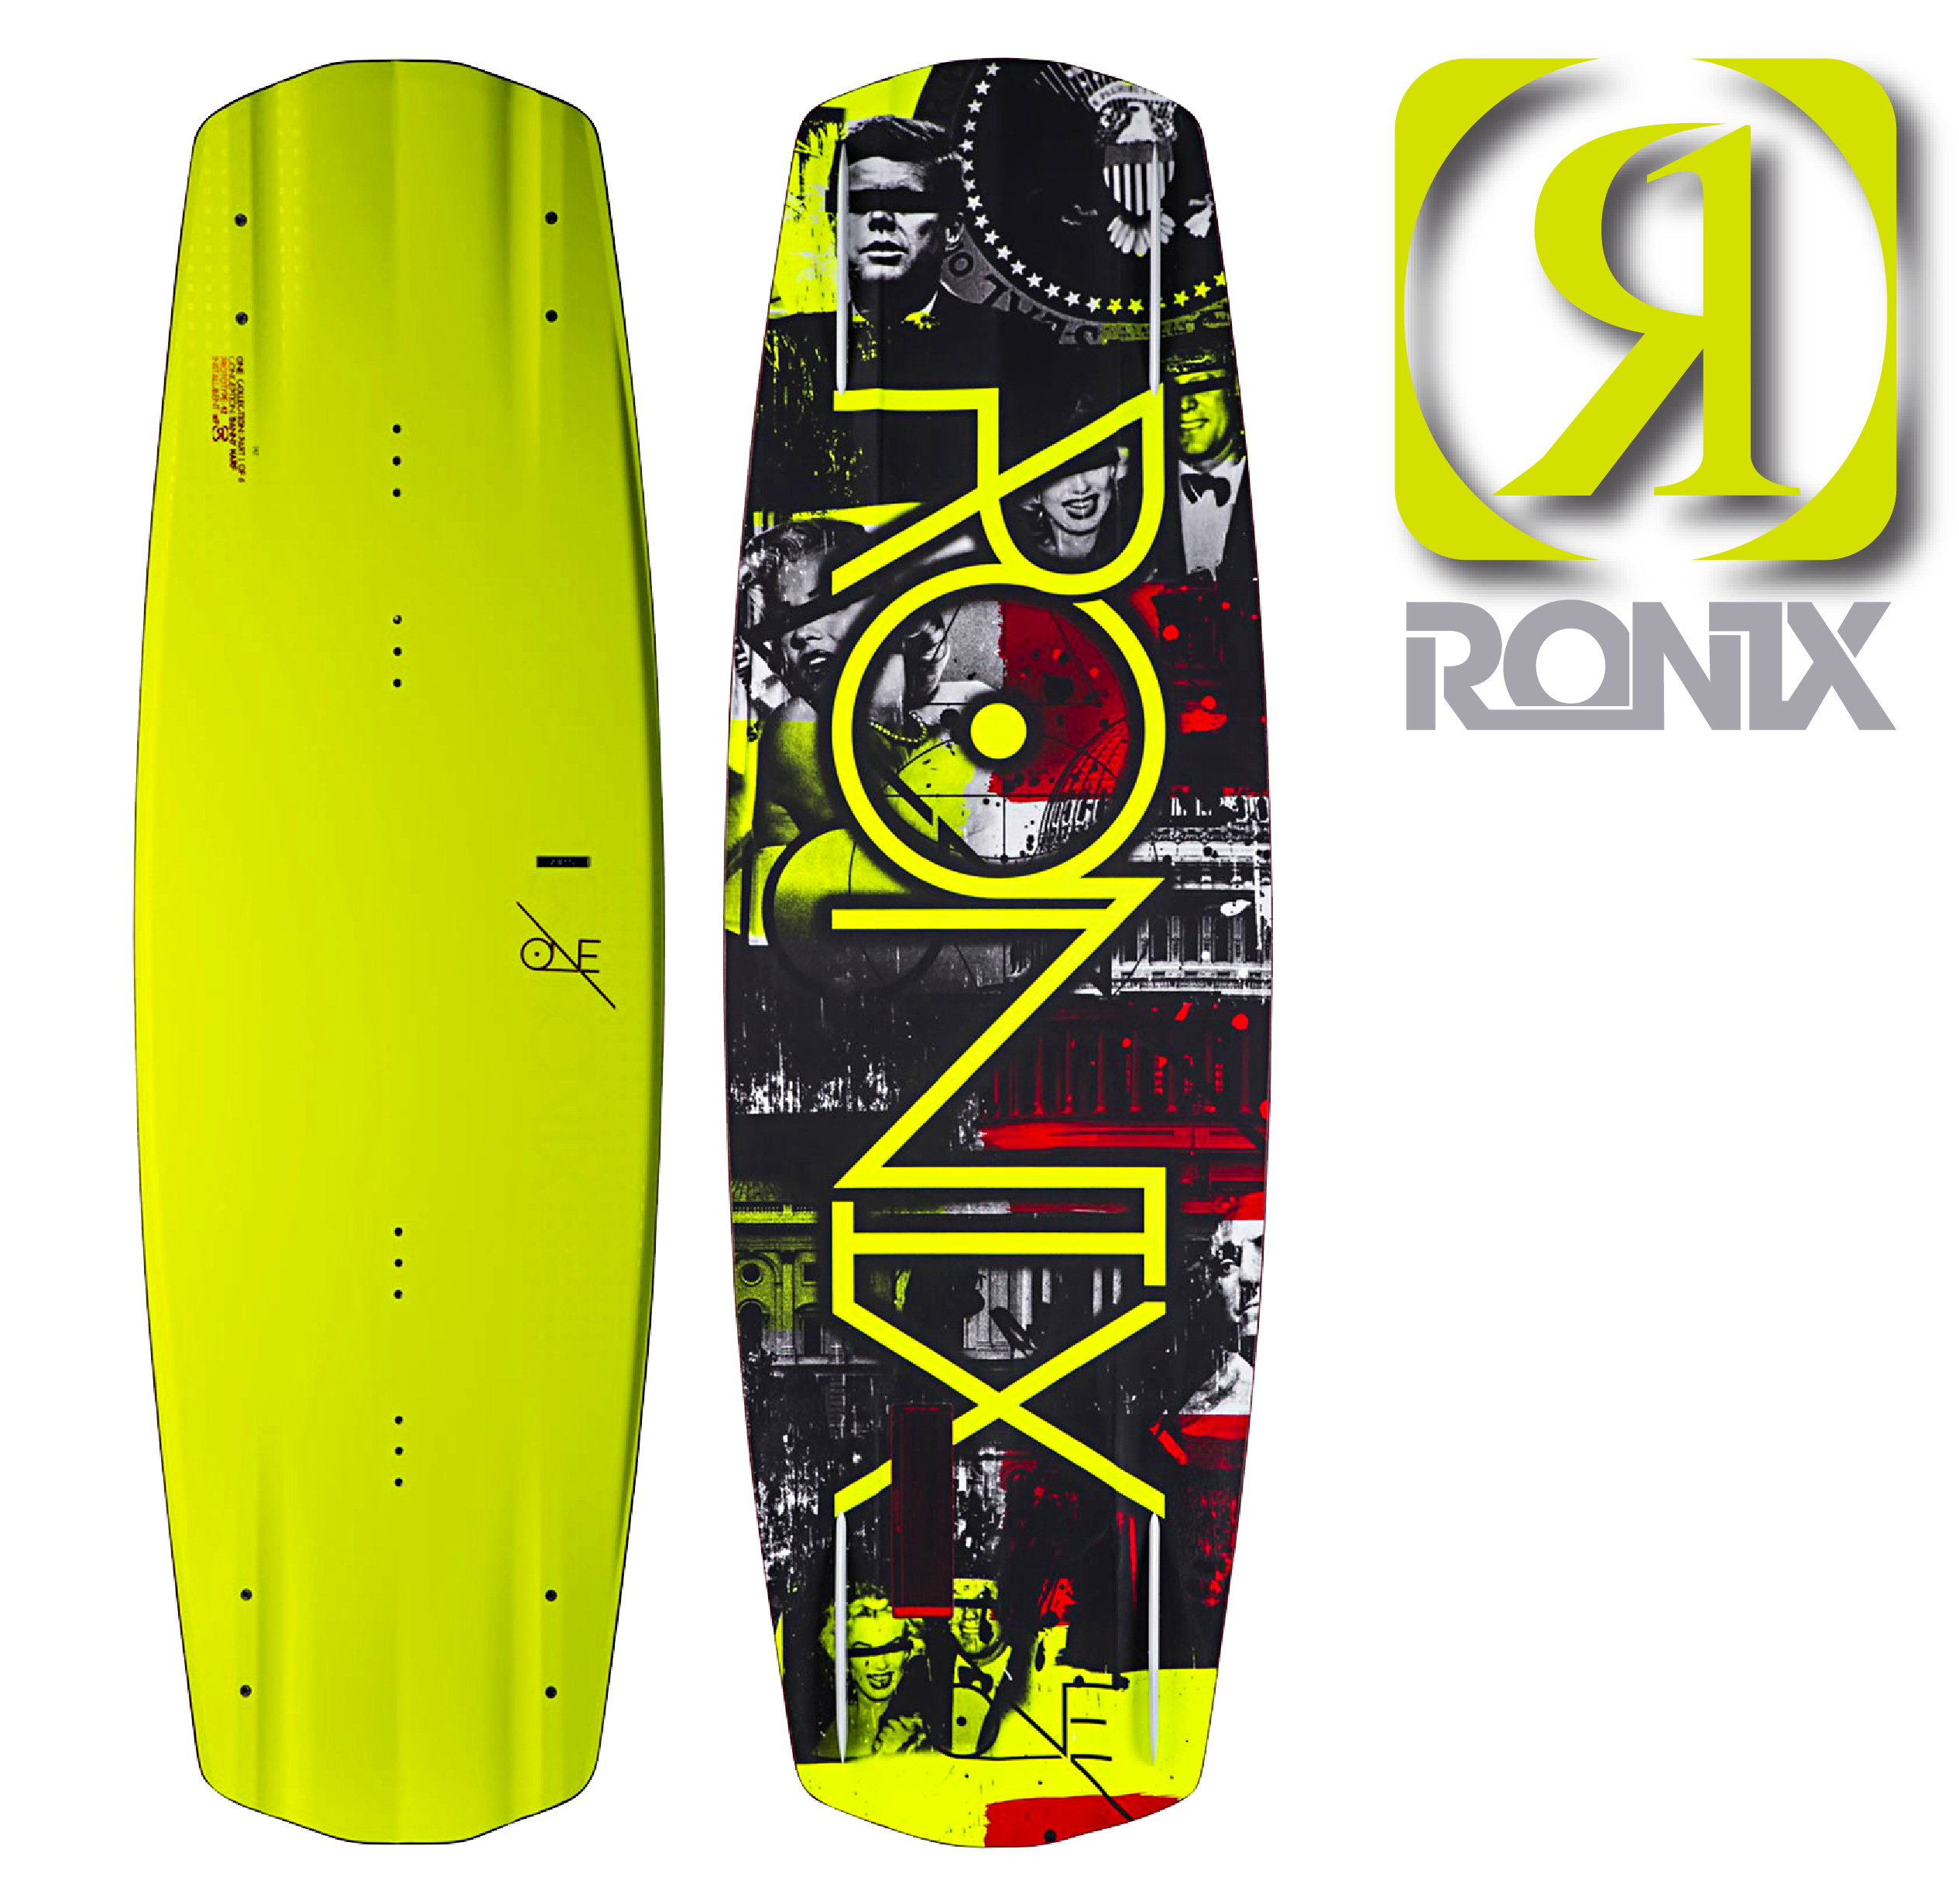 Tabla de Wakeboard Ronix One ATR 138cm